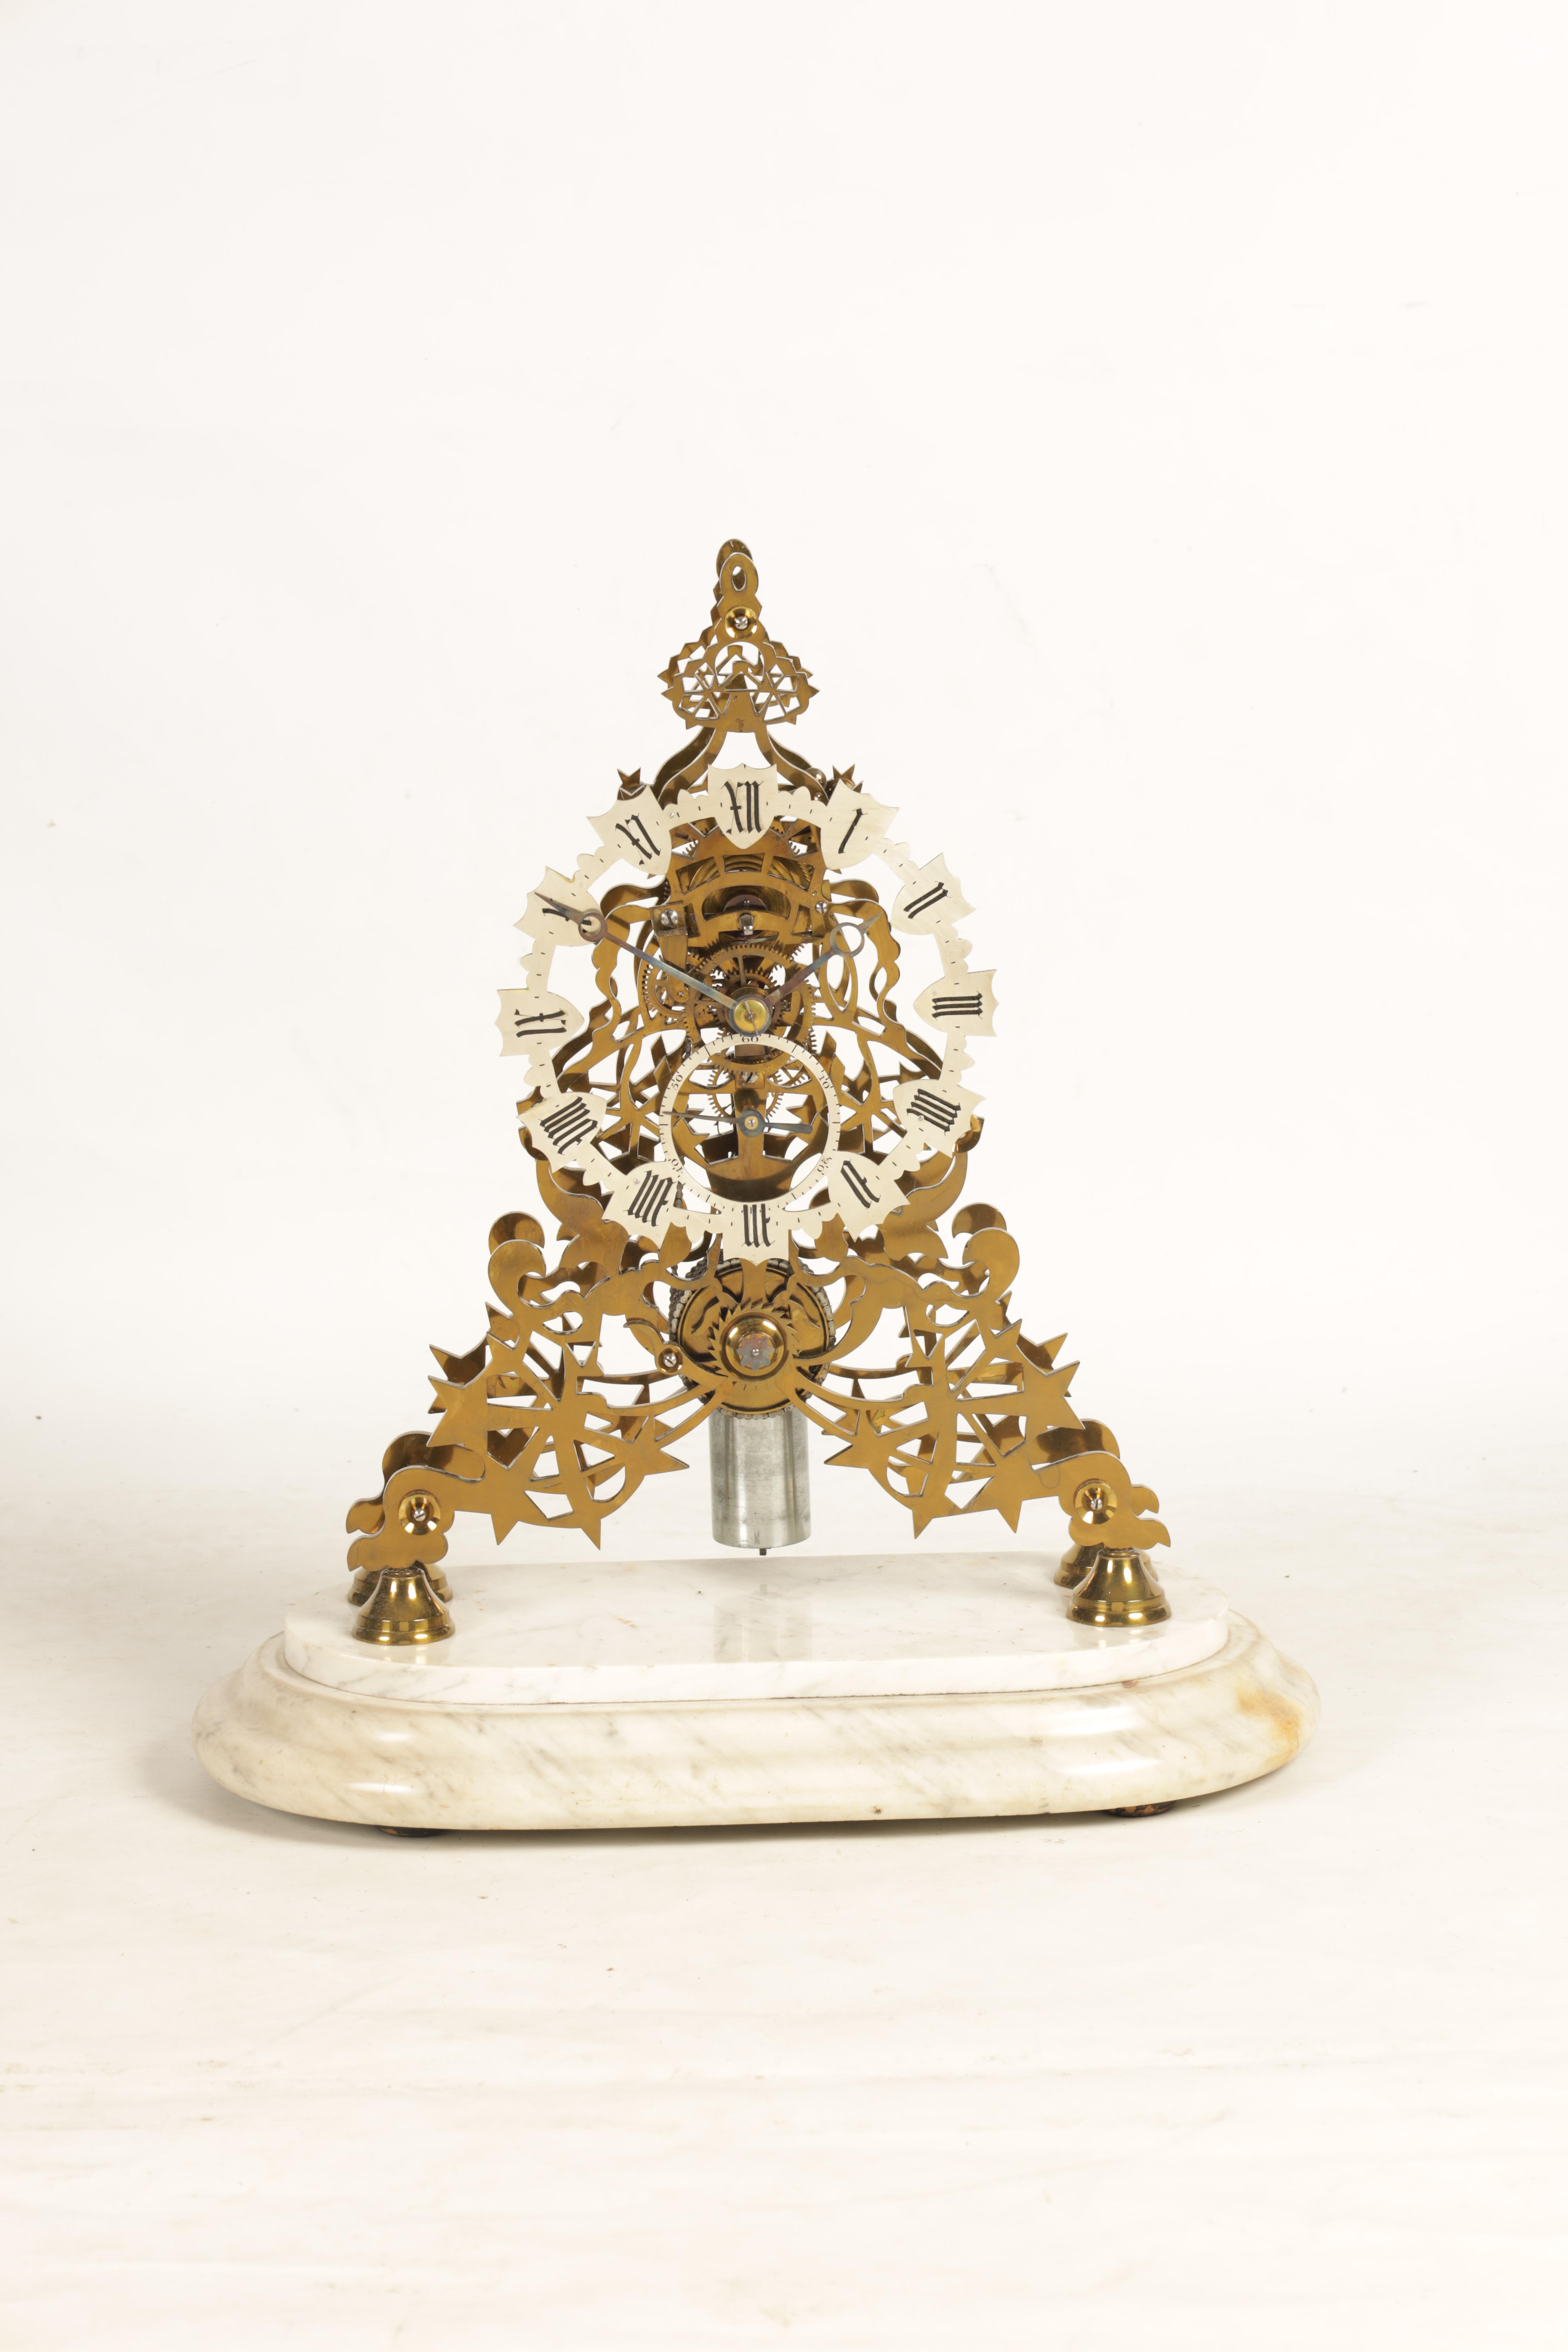 ATTRIBUTED TO EVANS OF HANDSWORTH A FINE LATE 19TH CENTURY BRASS FRAMED SKELETON TABLE REGULATOR - Image 2 of 12